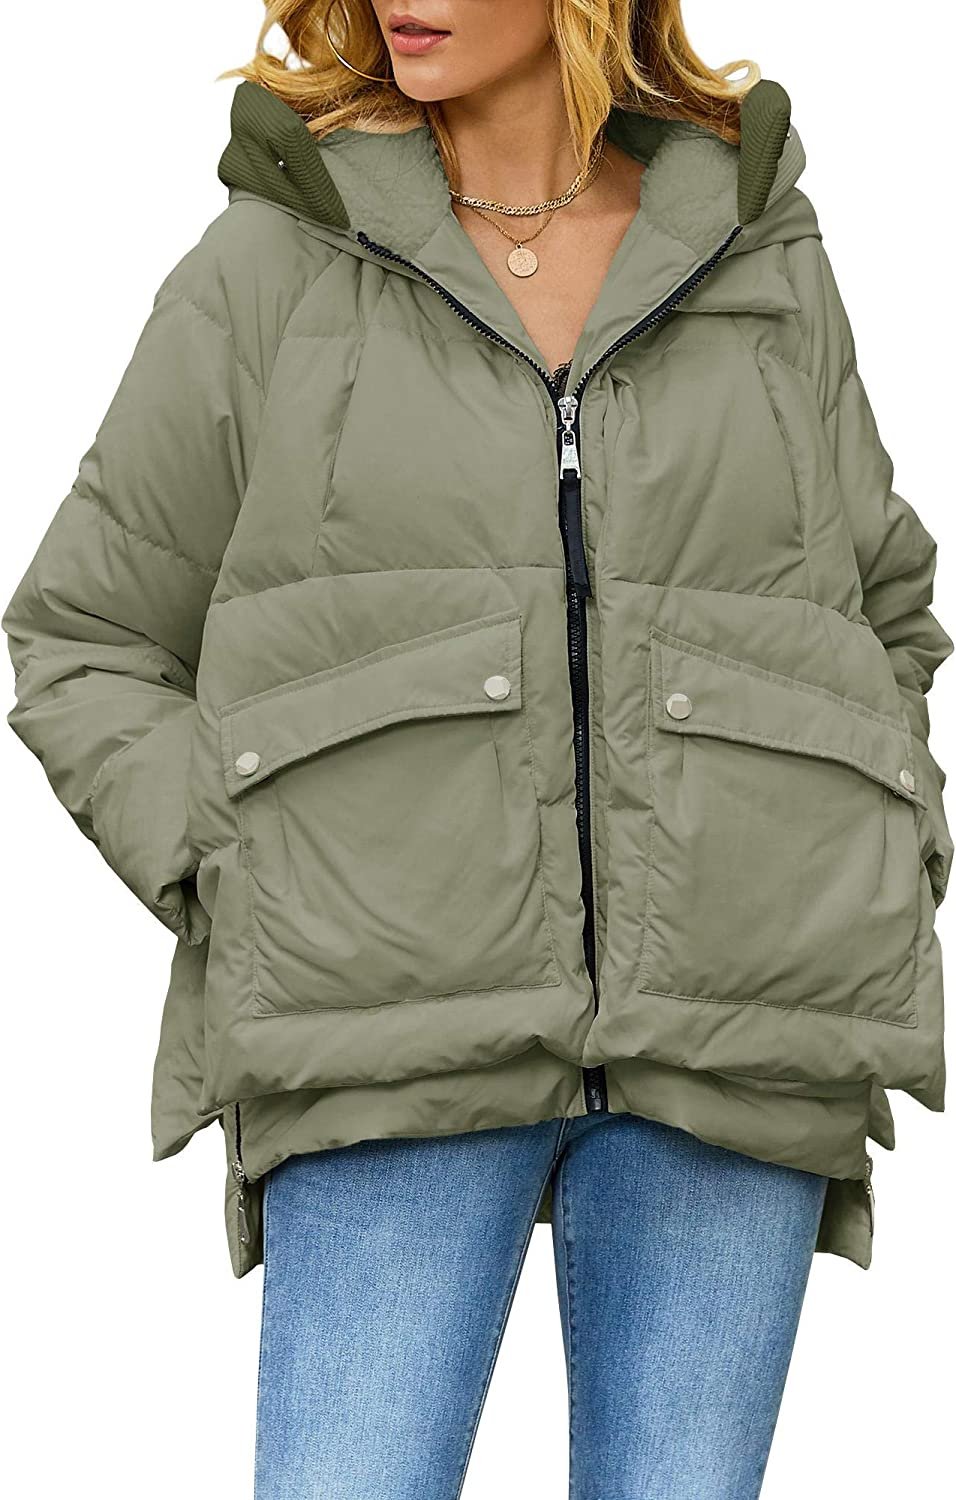 Ybenlow Womens Thickened Hooded Down Jacket Zip Up Puffer Parka Jackets Coat Winter Outwear Multiple Pockets